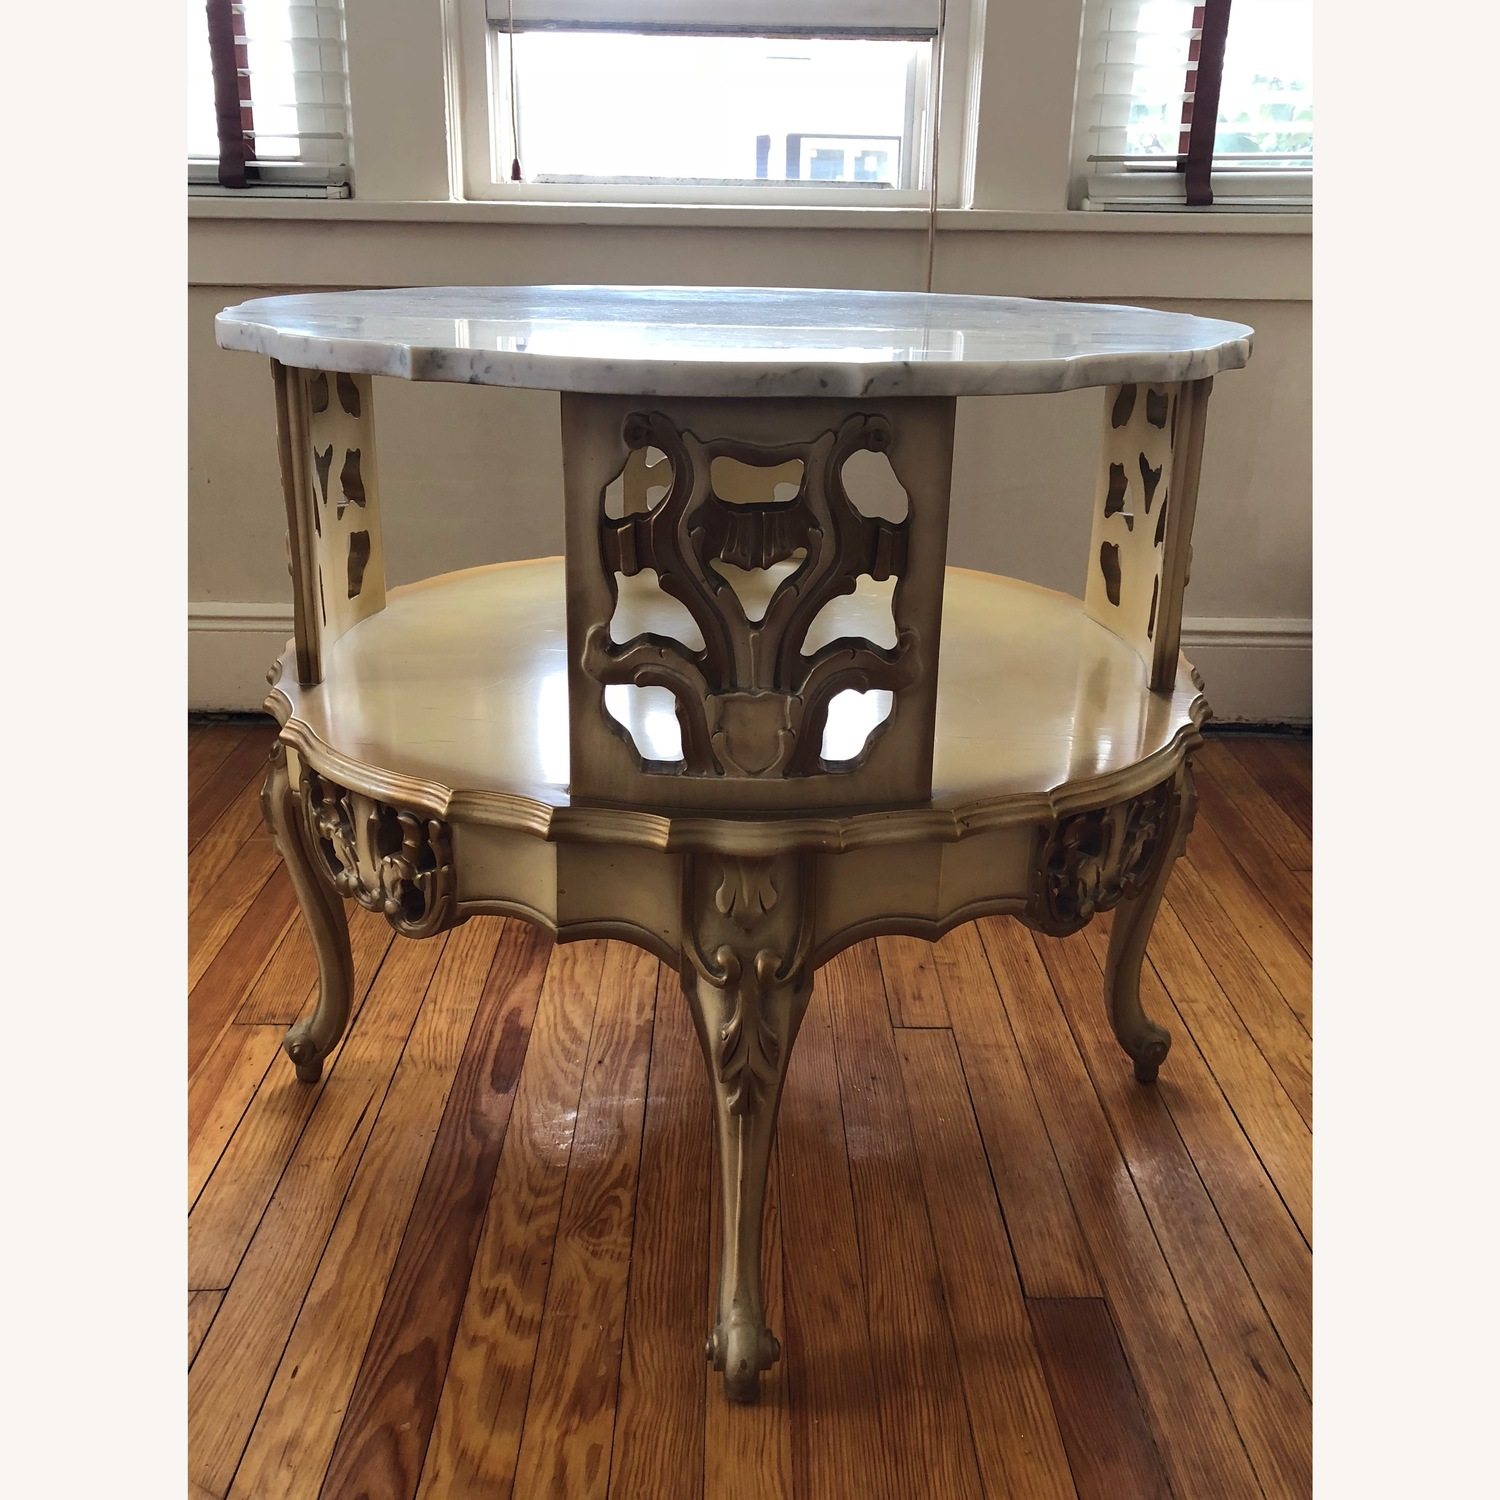 Italian 5 Piece Marble Top Tables - image-7